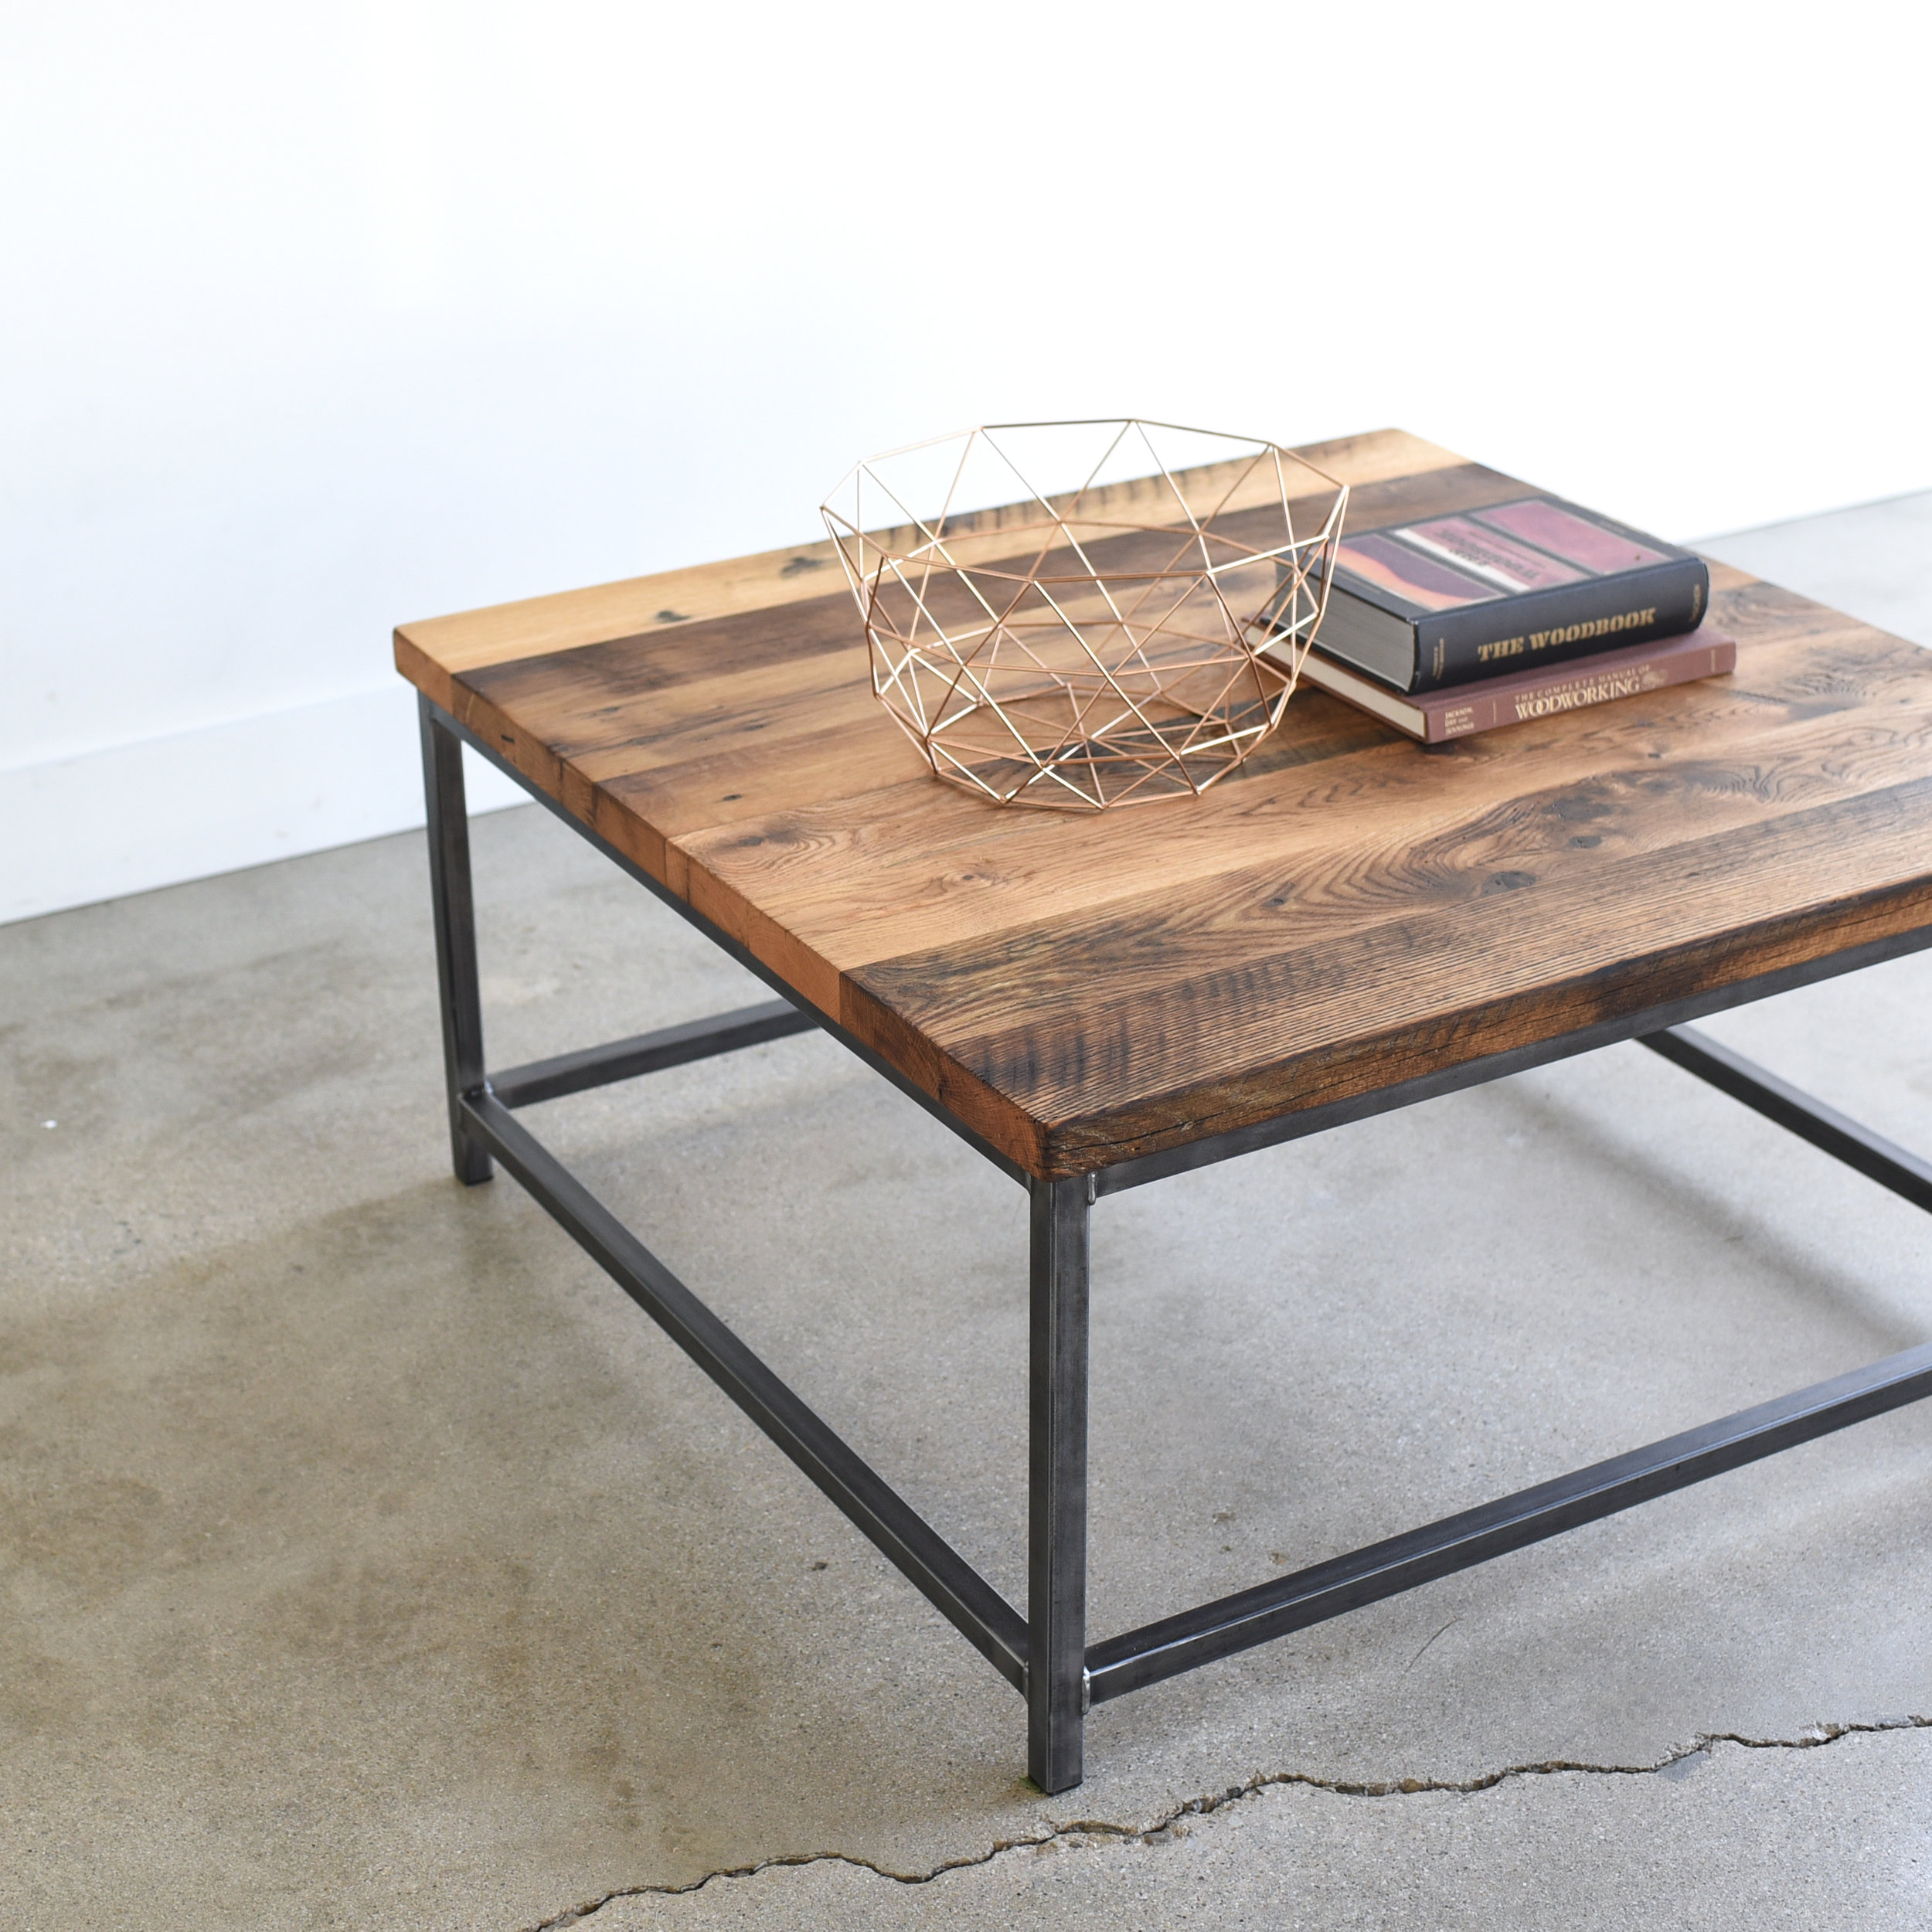 - Square Stoic Reclaimed Wood Coffee Table - WHAT WE MAKE